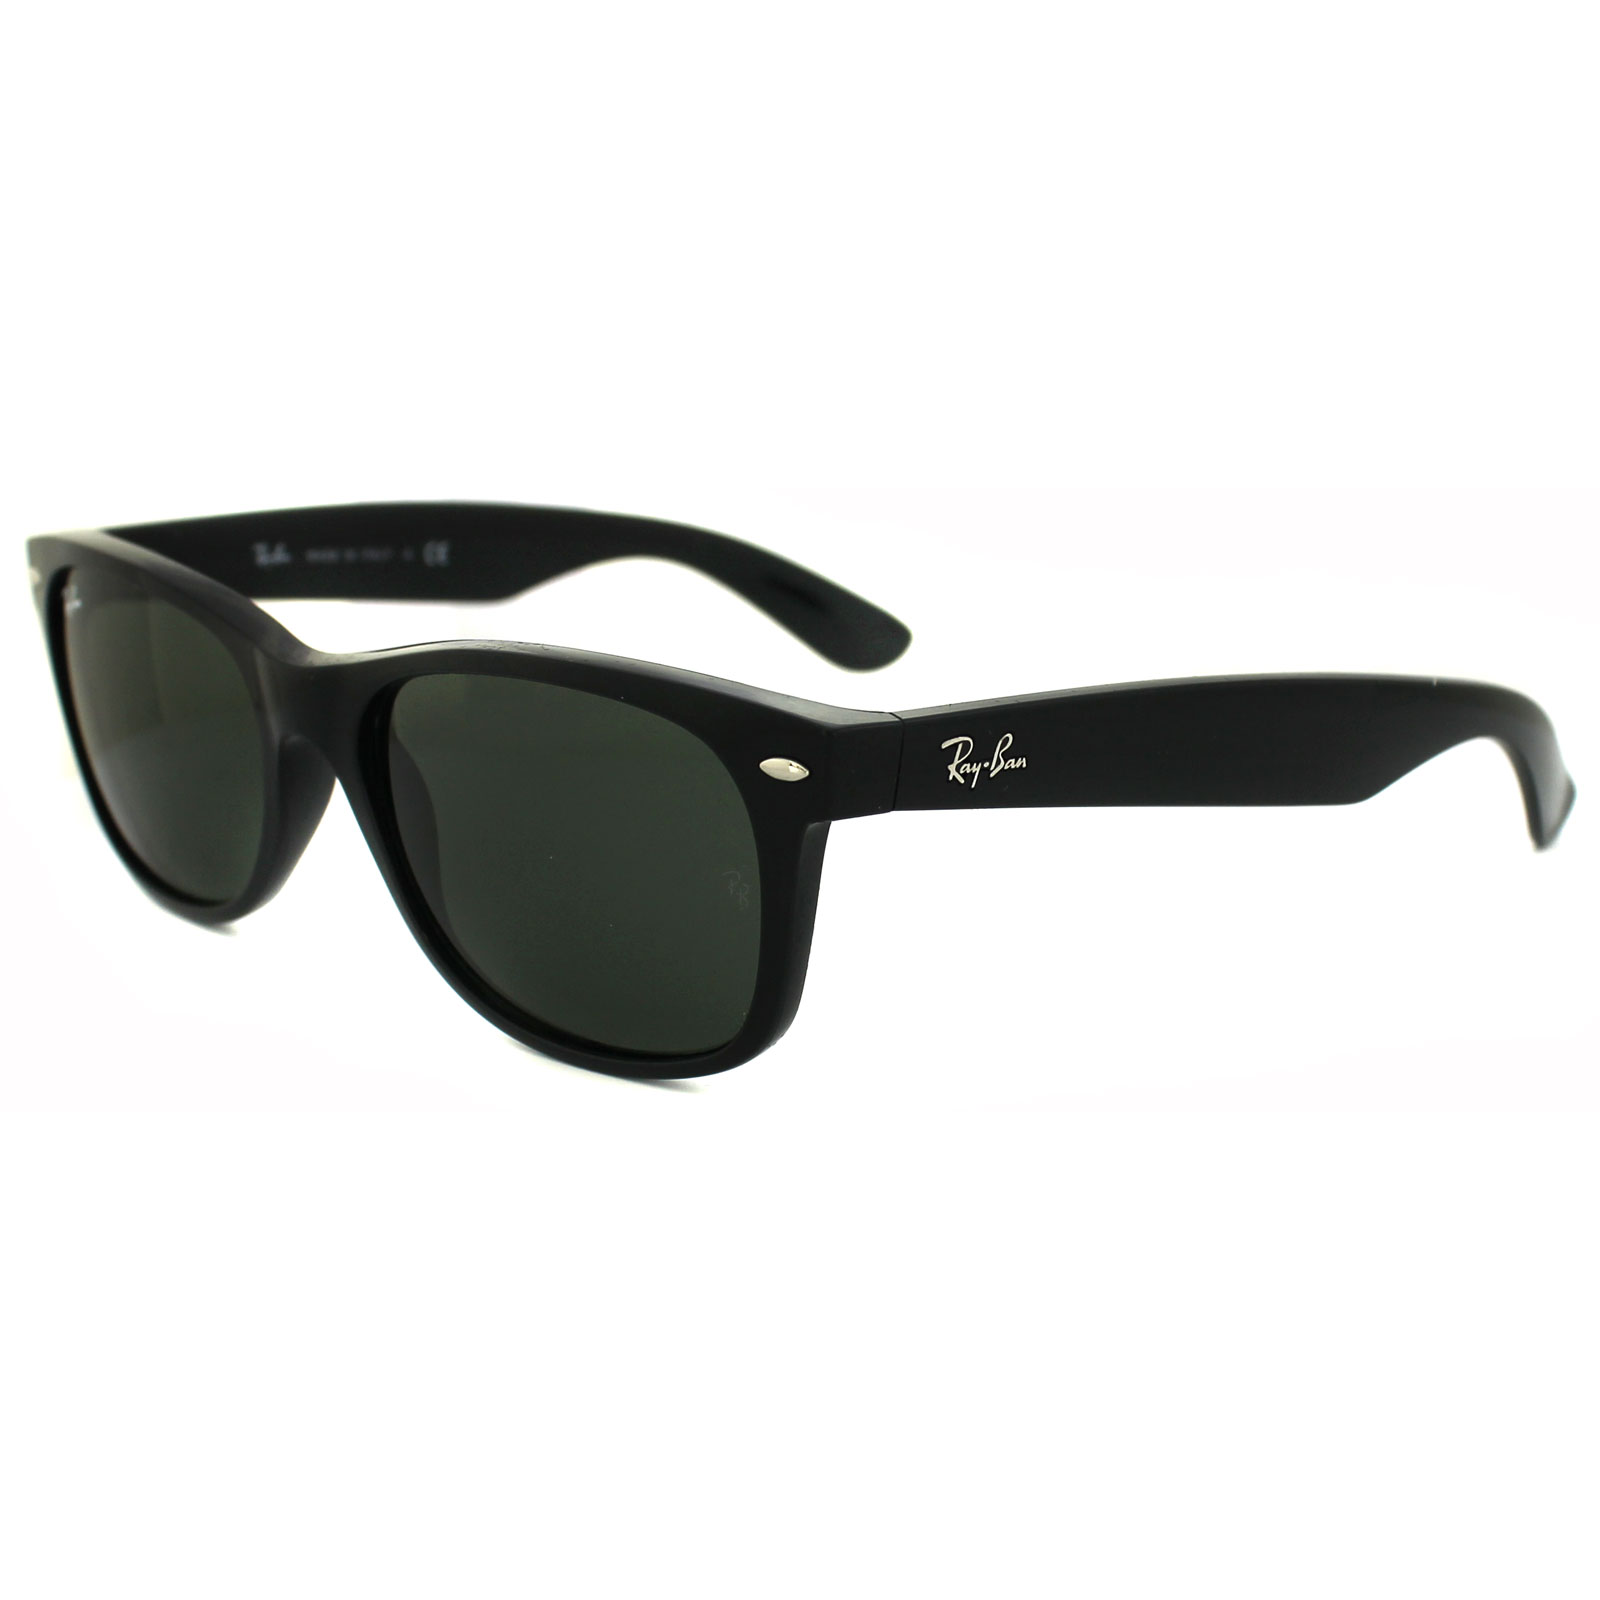 ray ban shades wayfarer  Cheap Ray-Ban New Wayfarer 2132 Sunglasses - Discounted Sunglasses